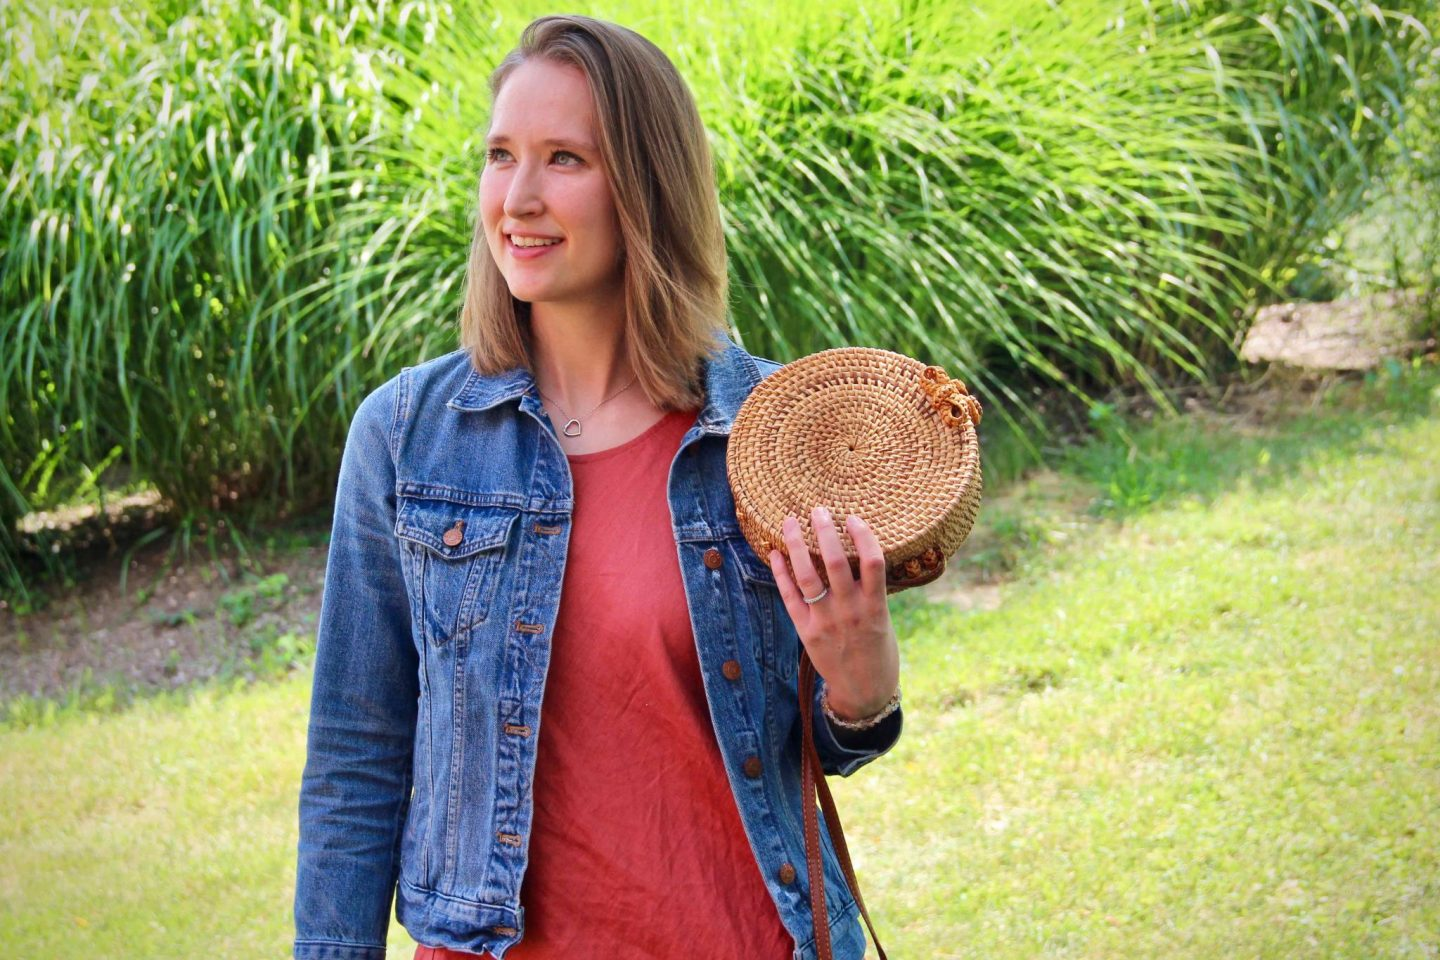 Straw Purse with Denim Jacket & Linen Dress for Easy Summer Style ... The Spectacular Adventurer